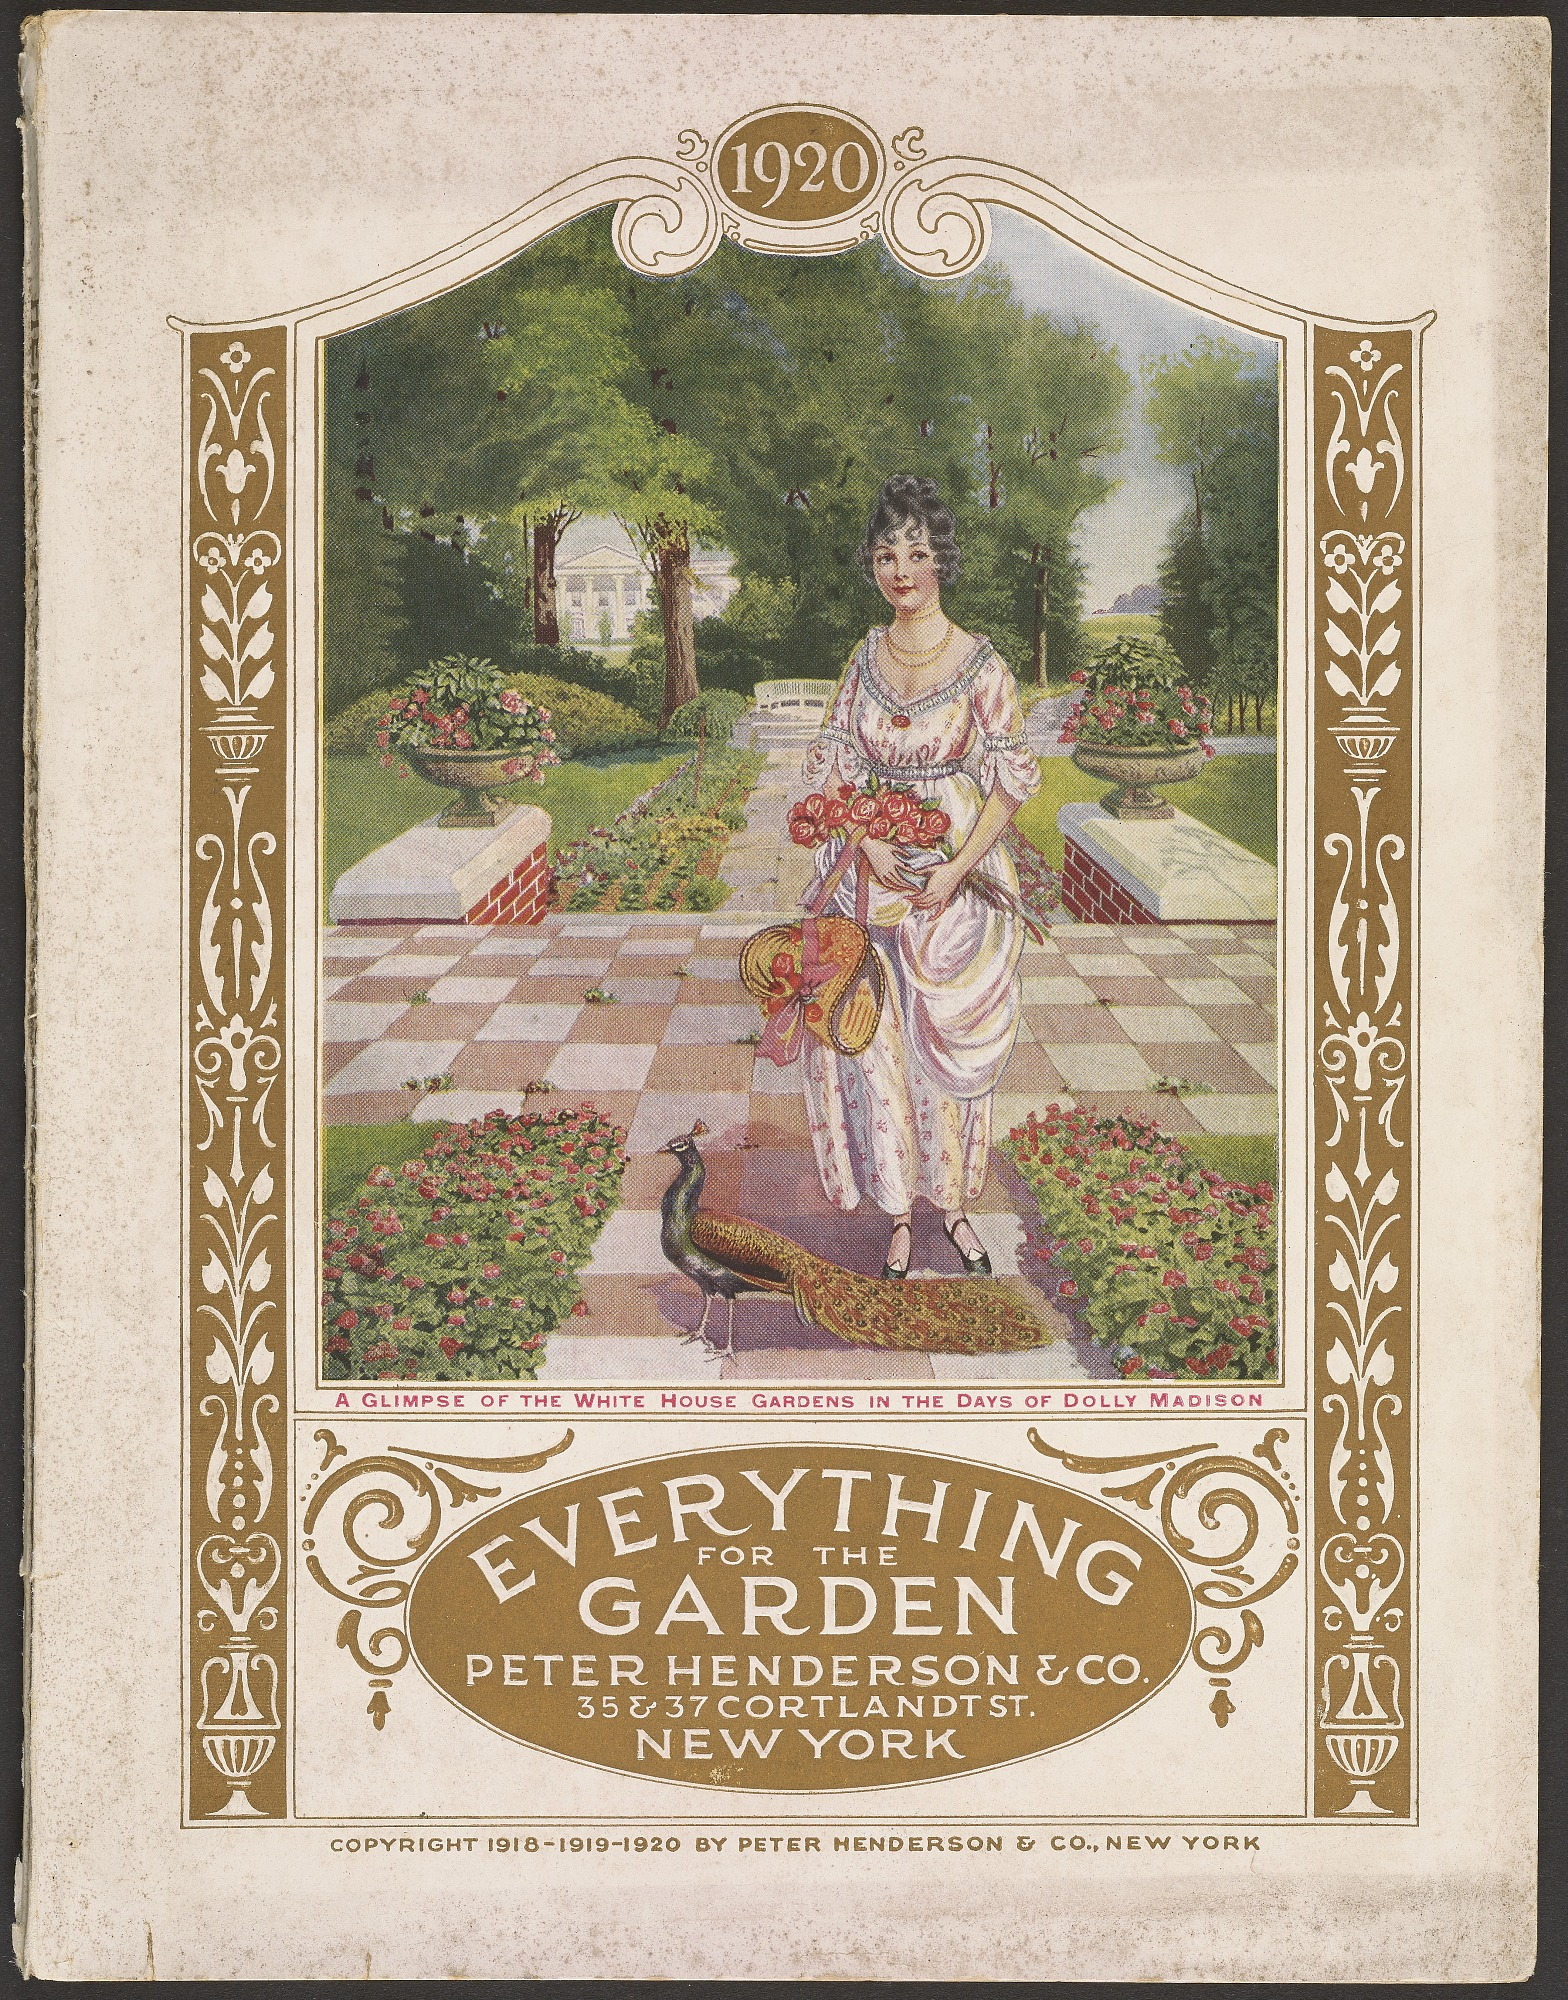 Here, First Lady Dolley Madison is imagined in her garden at the White House.